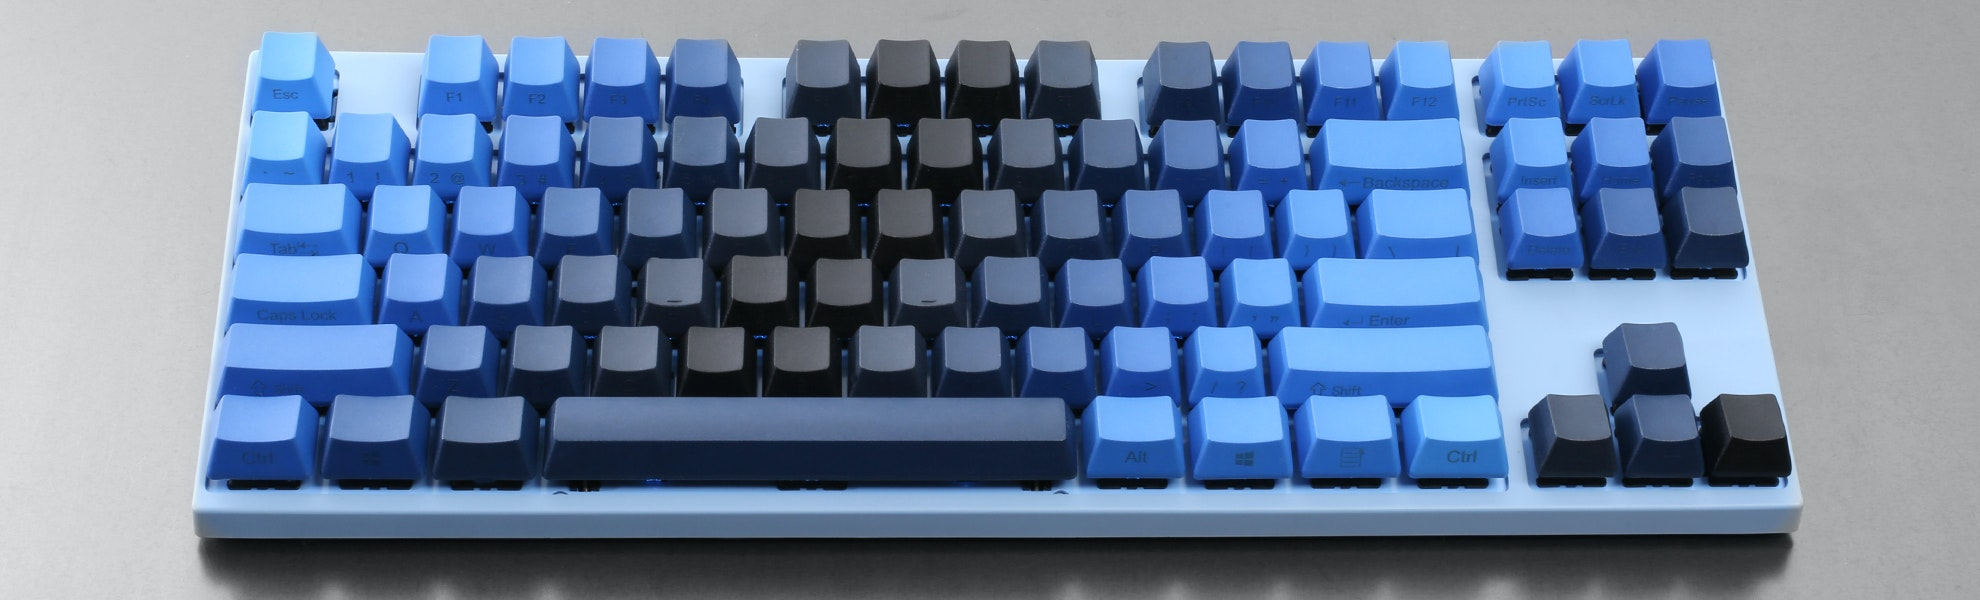 Midnight Gradient PBT Dye-Subbed Keycap Set